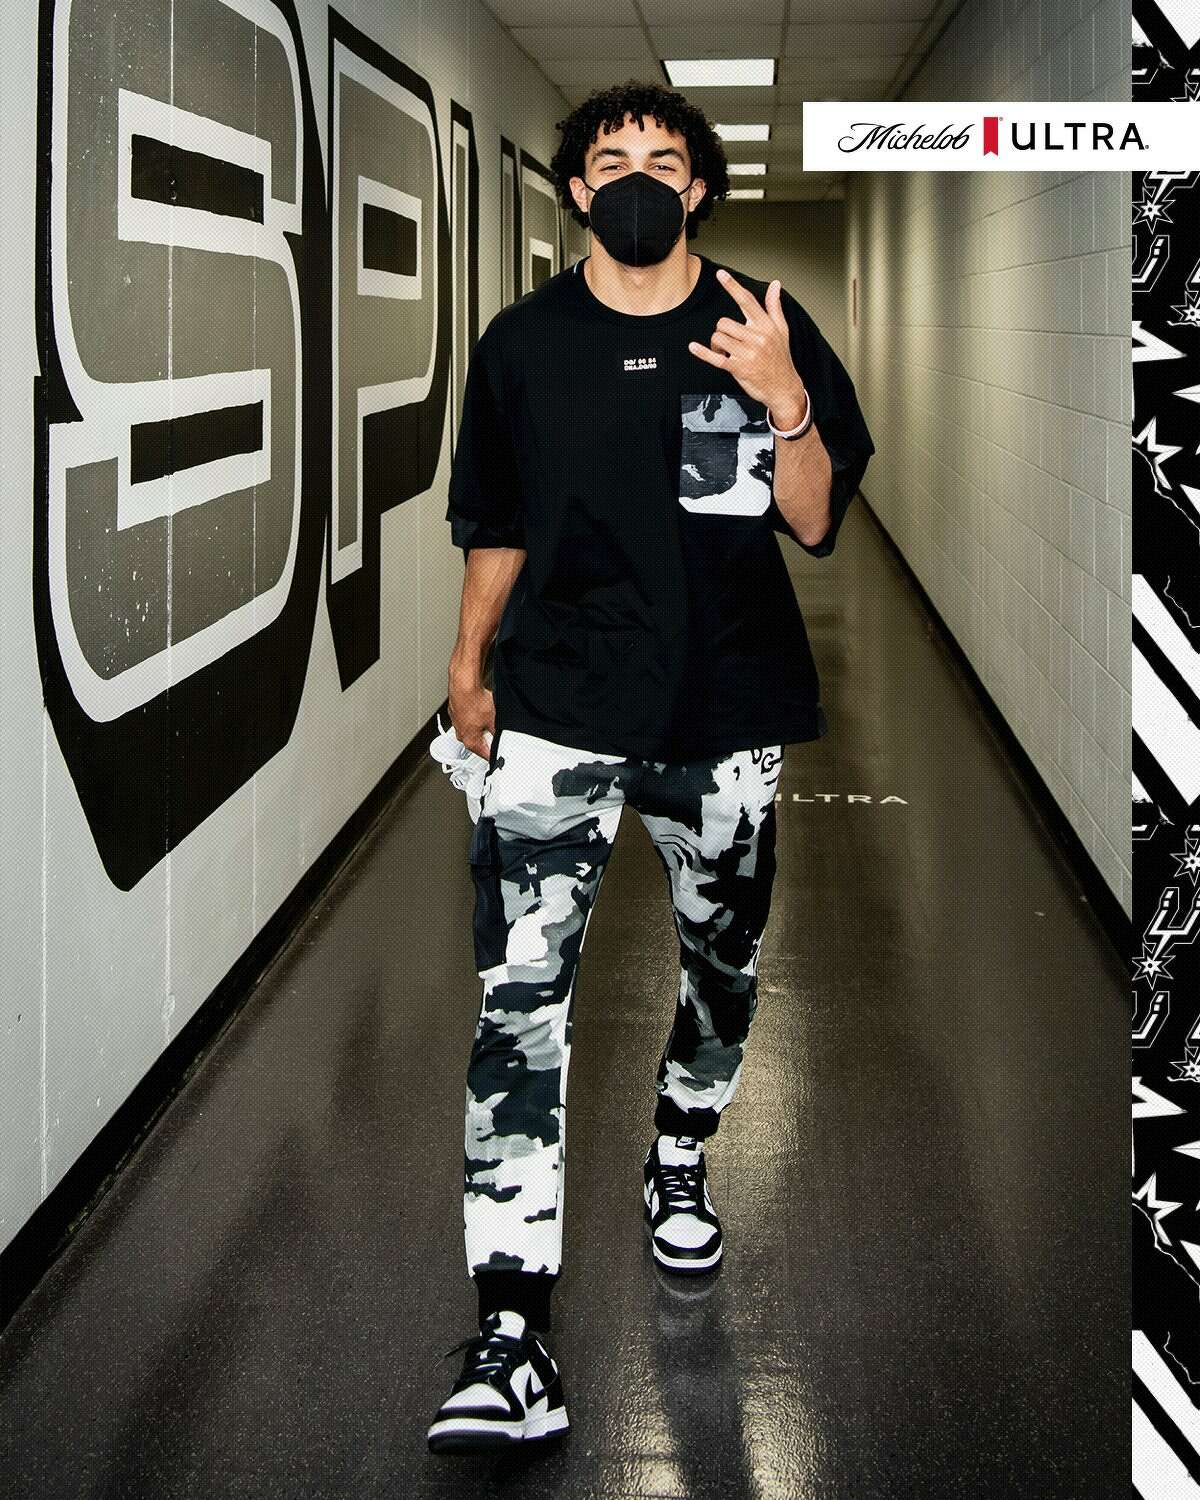 """Tre Jones is considered a """"#DGCeleb"""" (Instagram lingo for Dolce & Gabanna celebrity) with the likes of Lizzo, Halle Berry and Ozuna. The athlete was highlighted across the brand's social media accounts on Tuesday for his arena entrance fashion ahead of the April 22 game against the Detroit Pistons."""